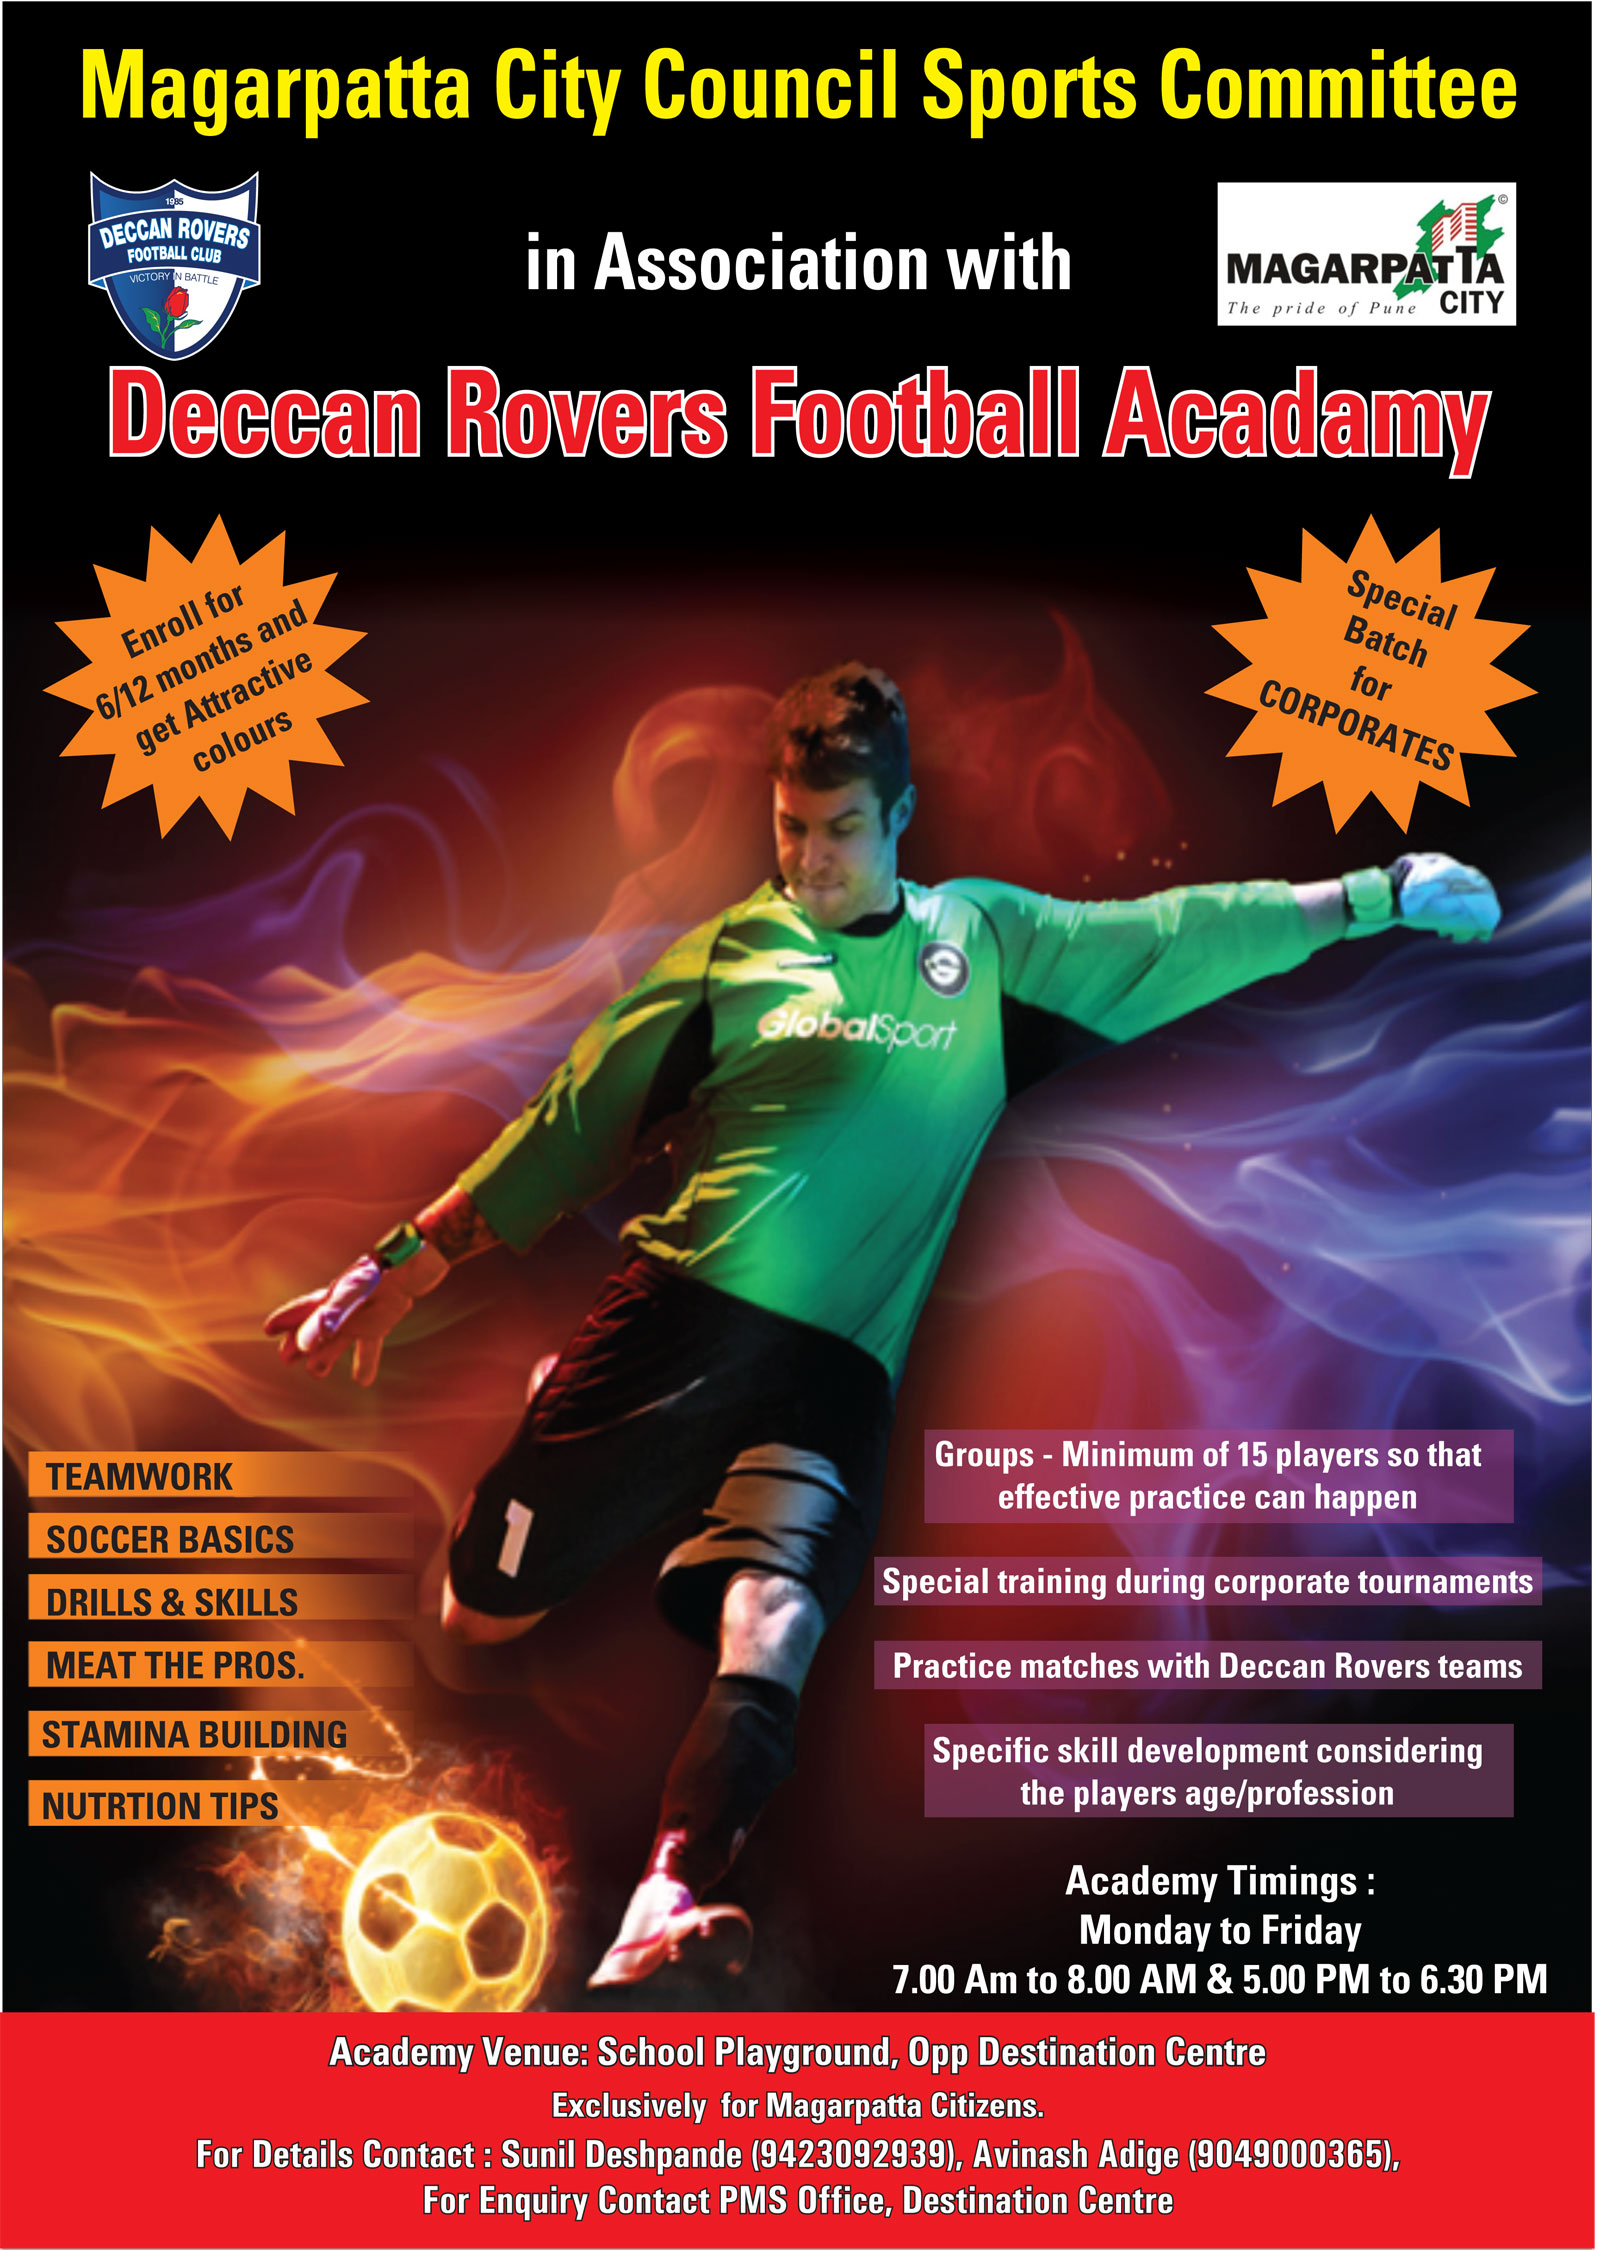 Deccan-Rovers-Football-Academy---Sports-Committee-1